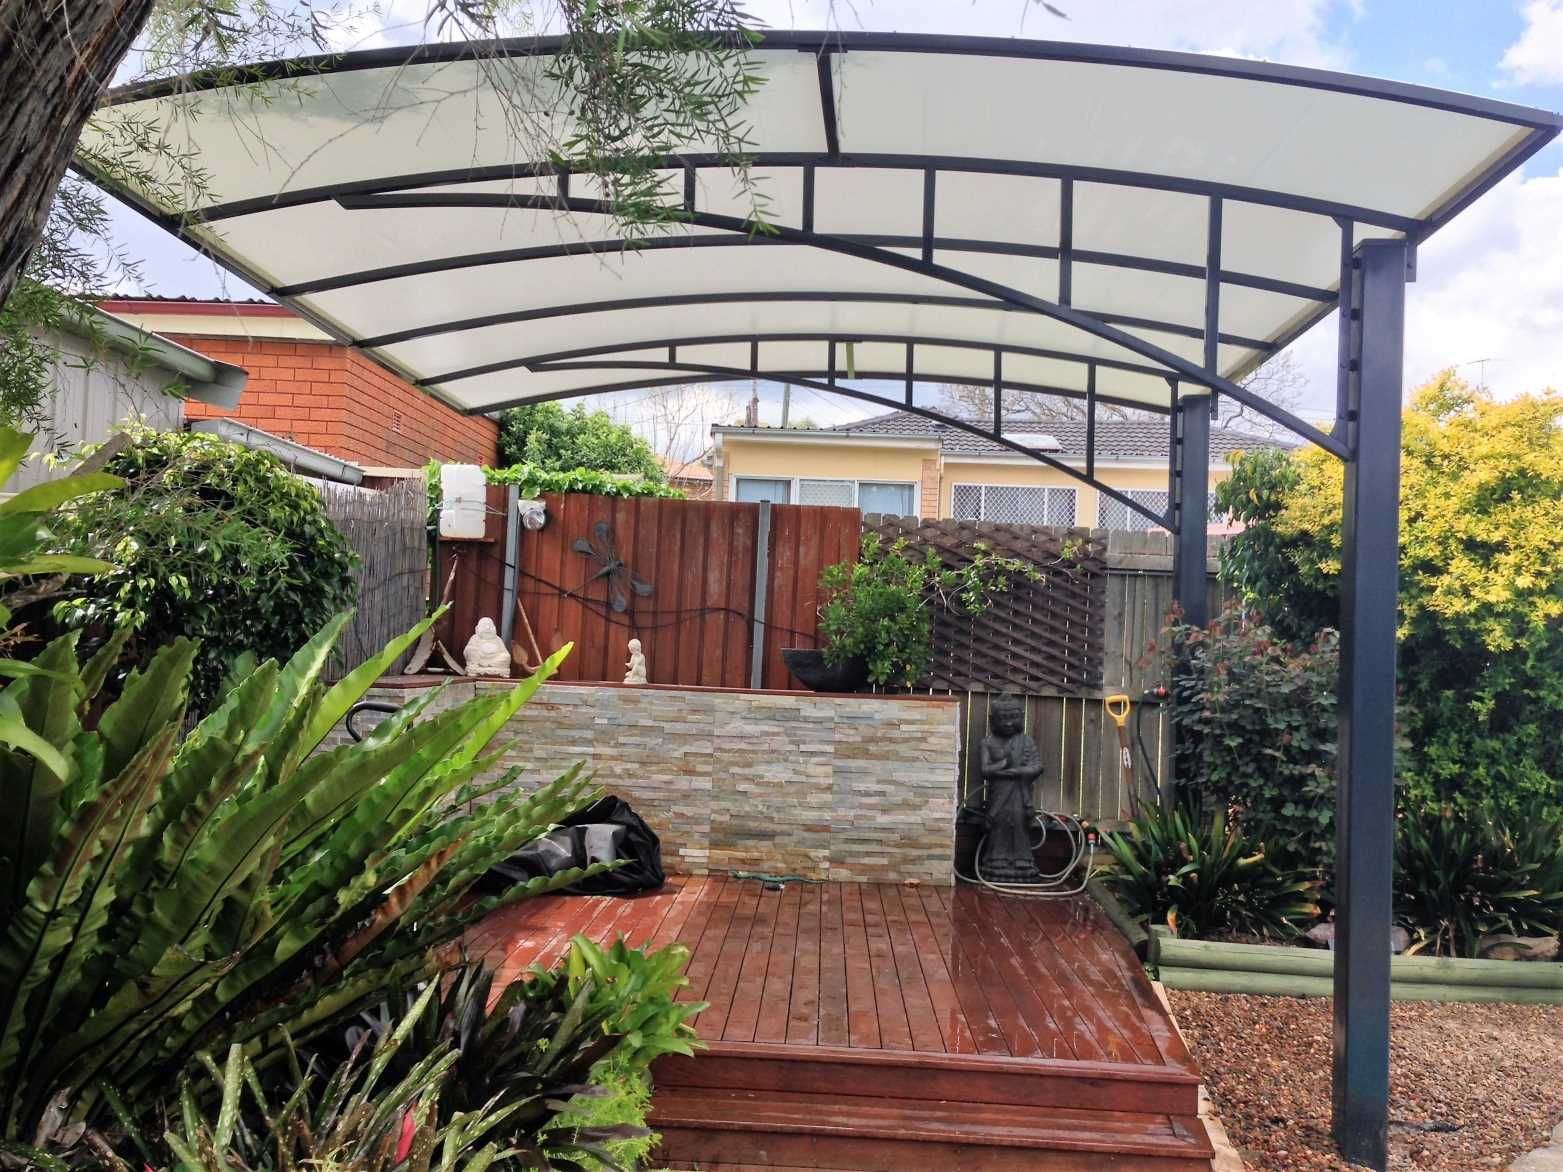 Pioneer shade structures cantilever structures porch for Metal sun shade structures